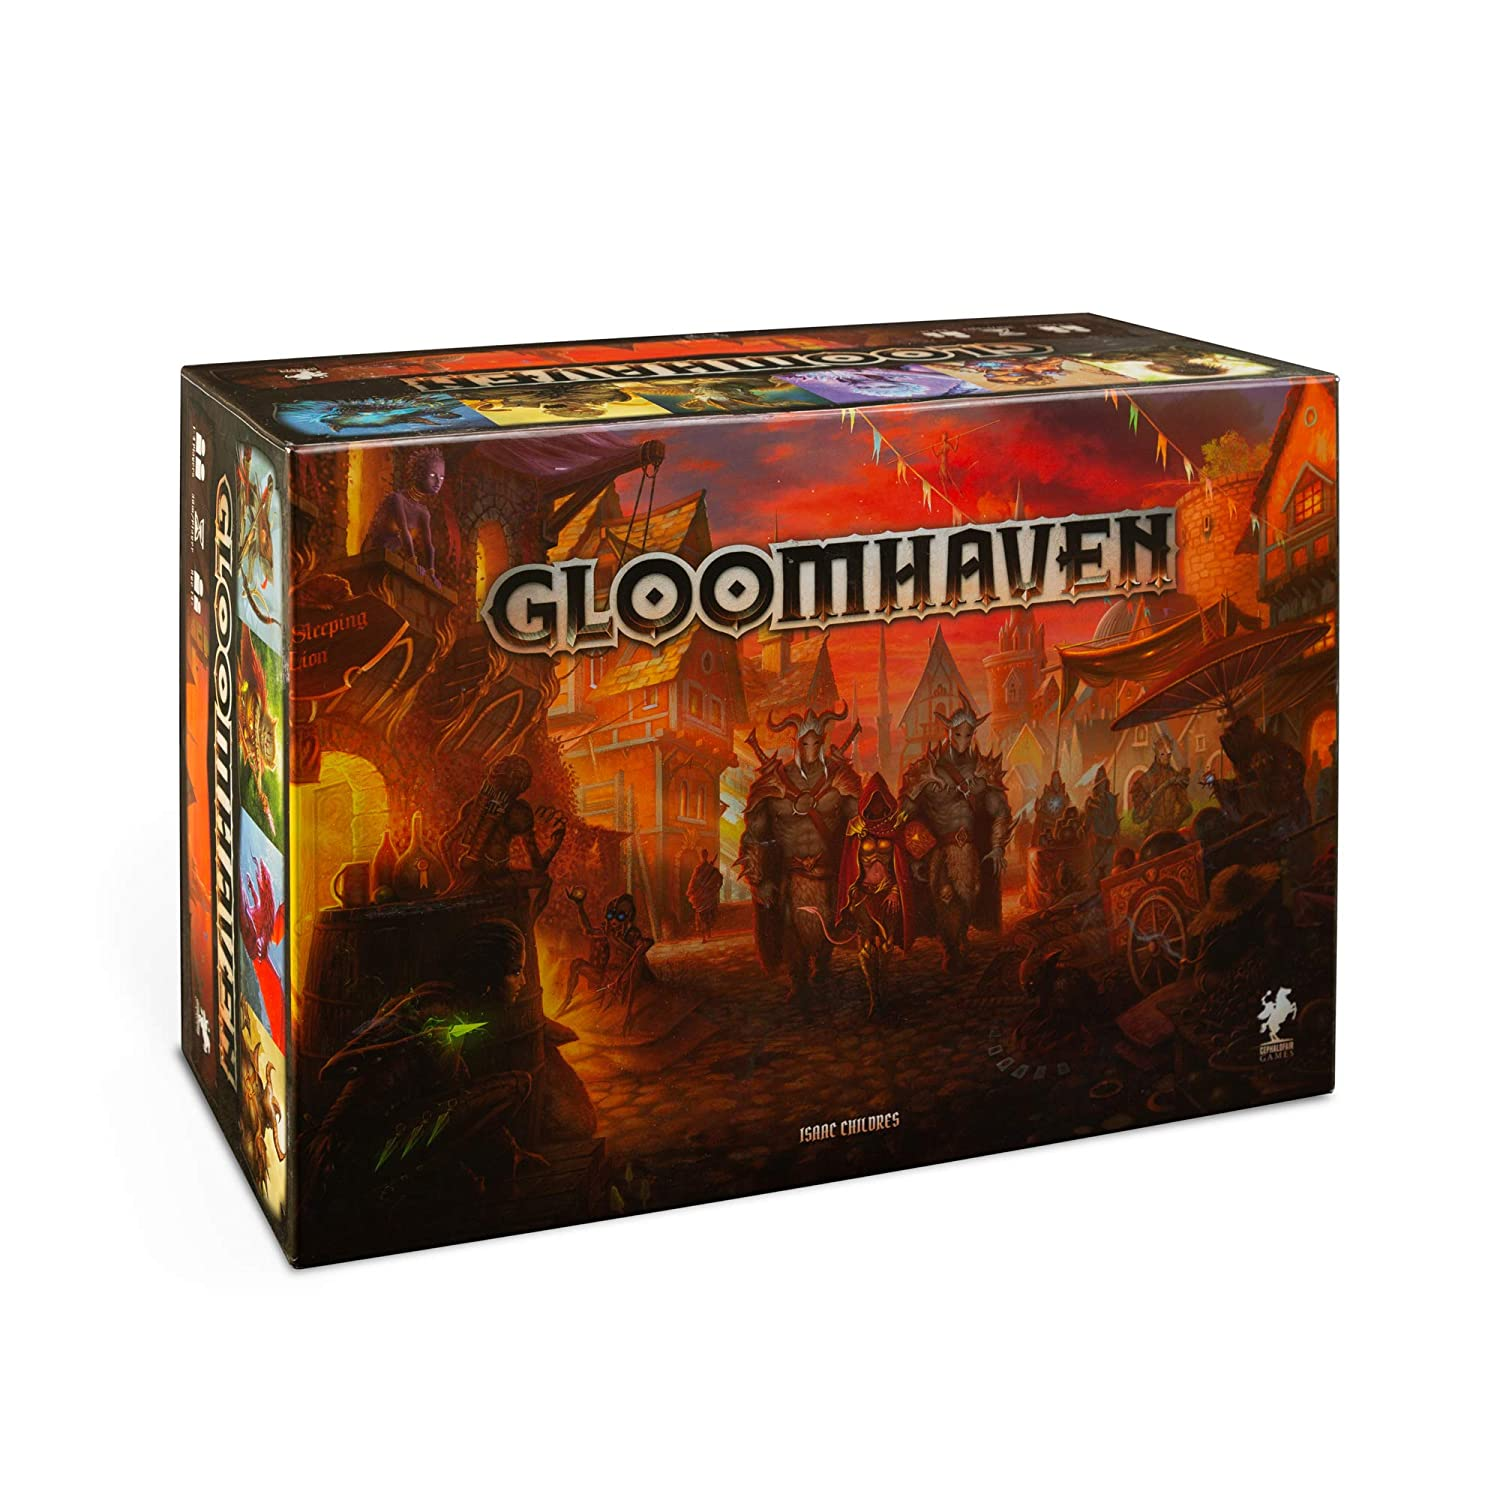 Gloomhaven game box